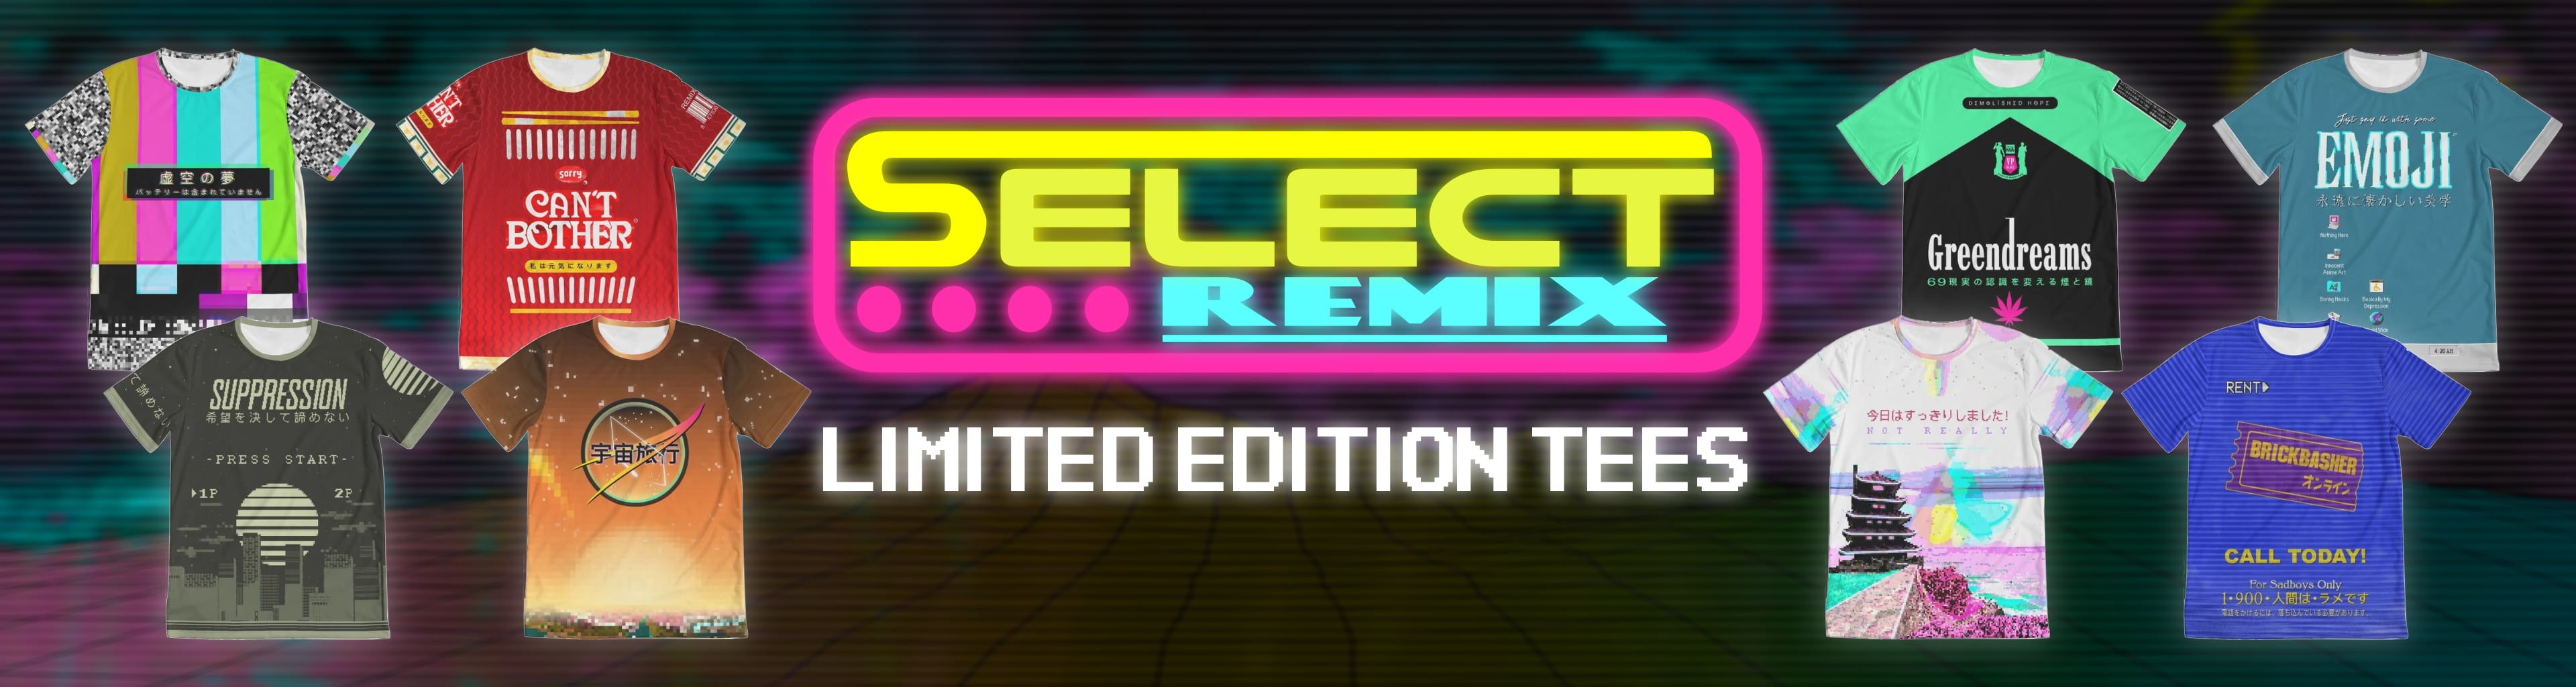 Select REMIX banner, tap to browse.